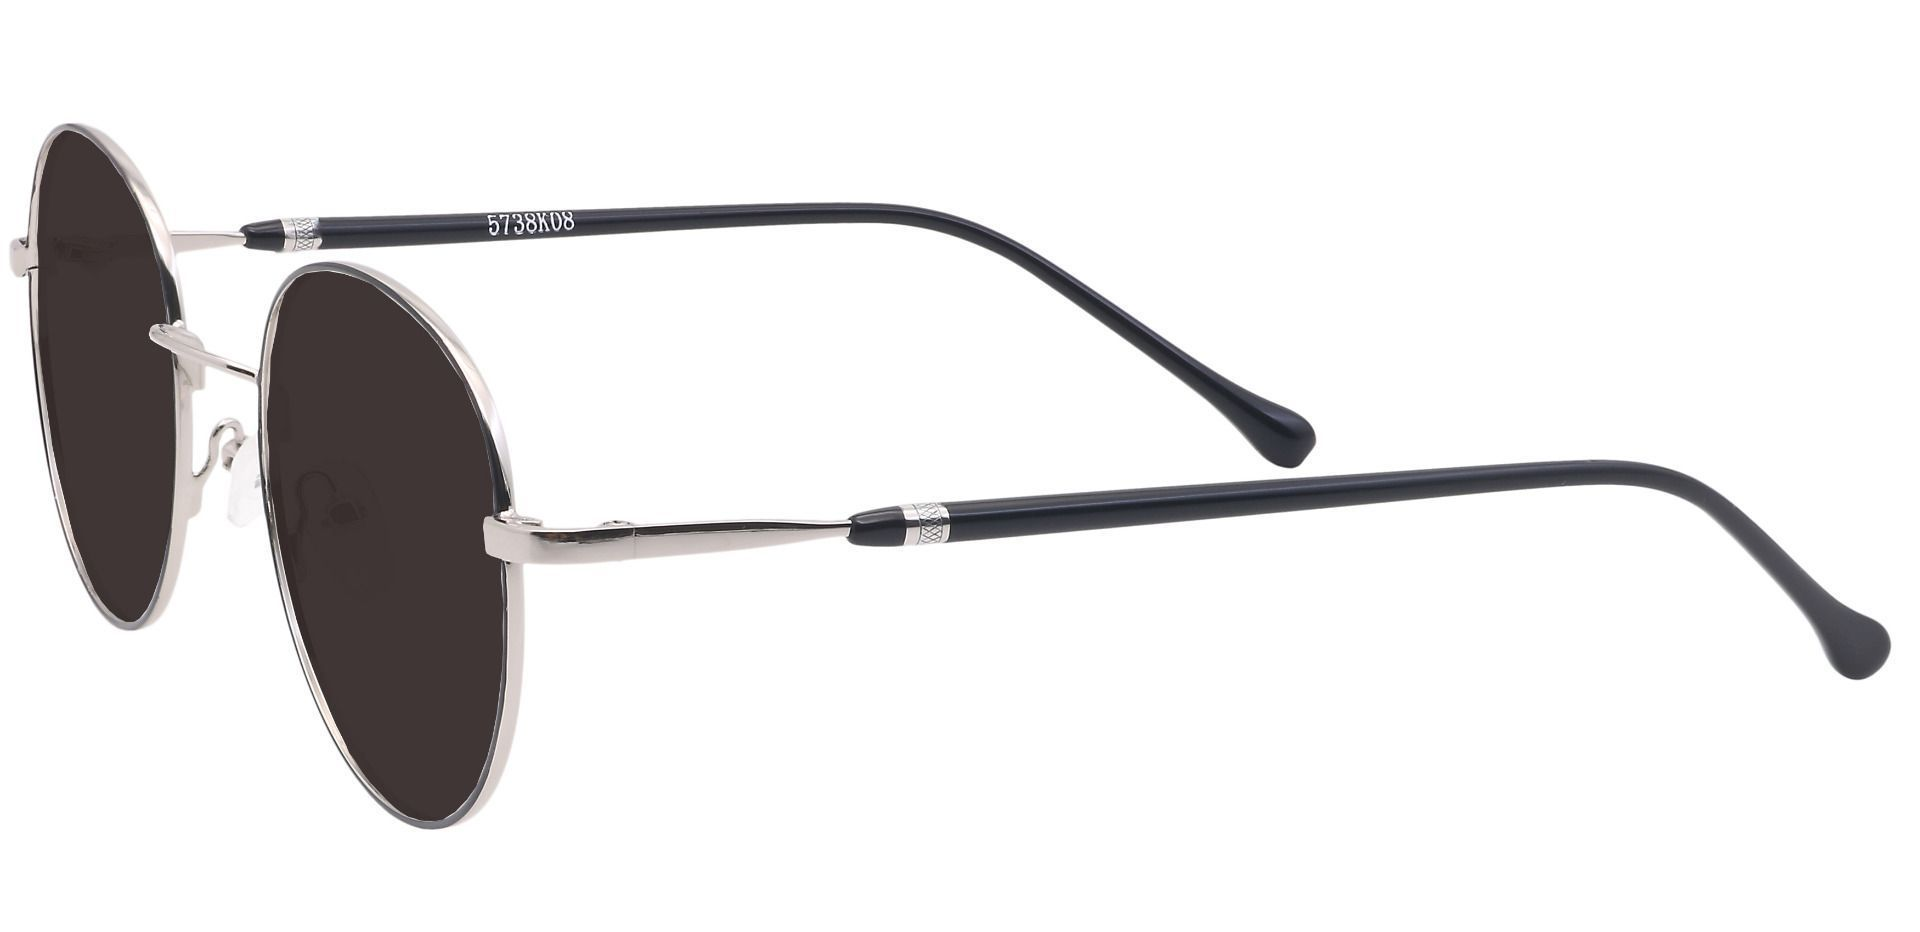 Marlow Oval Prescription Sunglasses - Black Frame With Gray Lenses